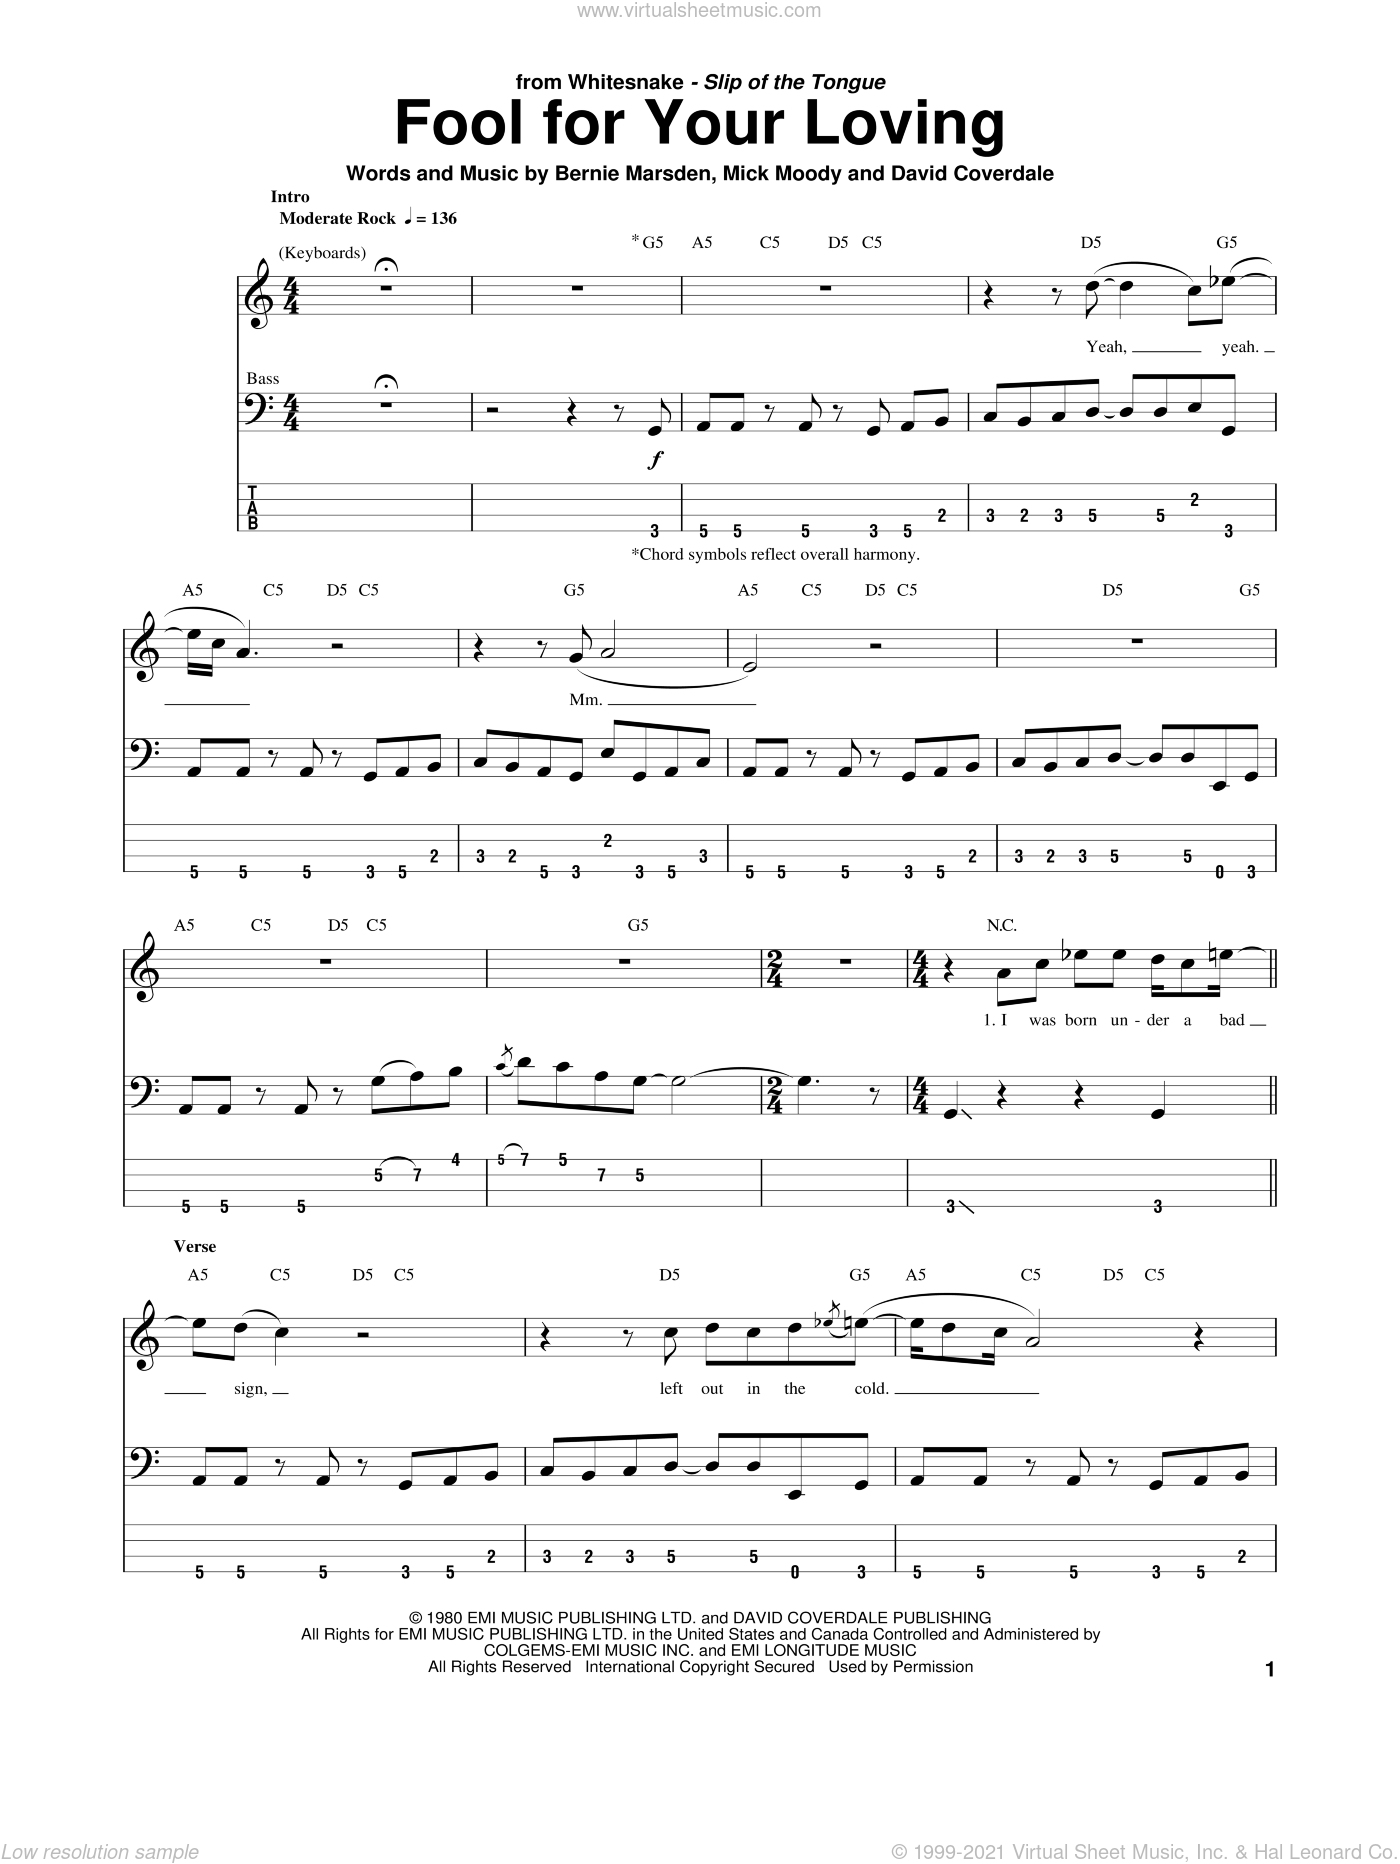 Fool For Your Loving sheet music for bass (tablature) (bass guitar) by Michael Moody, Whitesnake, Bernie Marsden and David Coverdale. Score Image Preview.